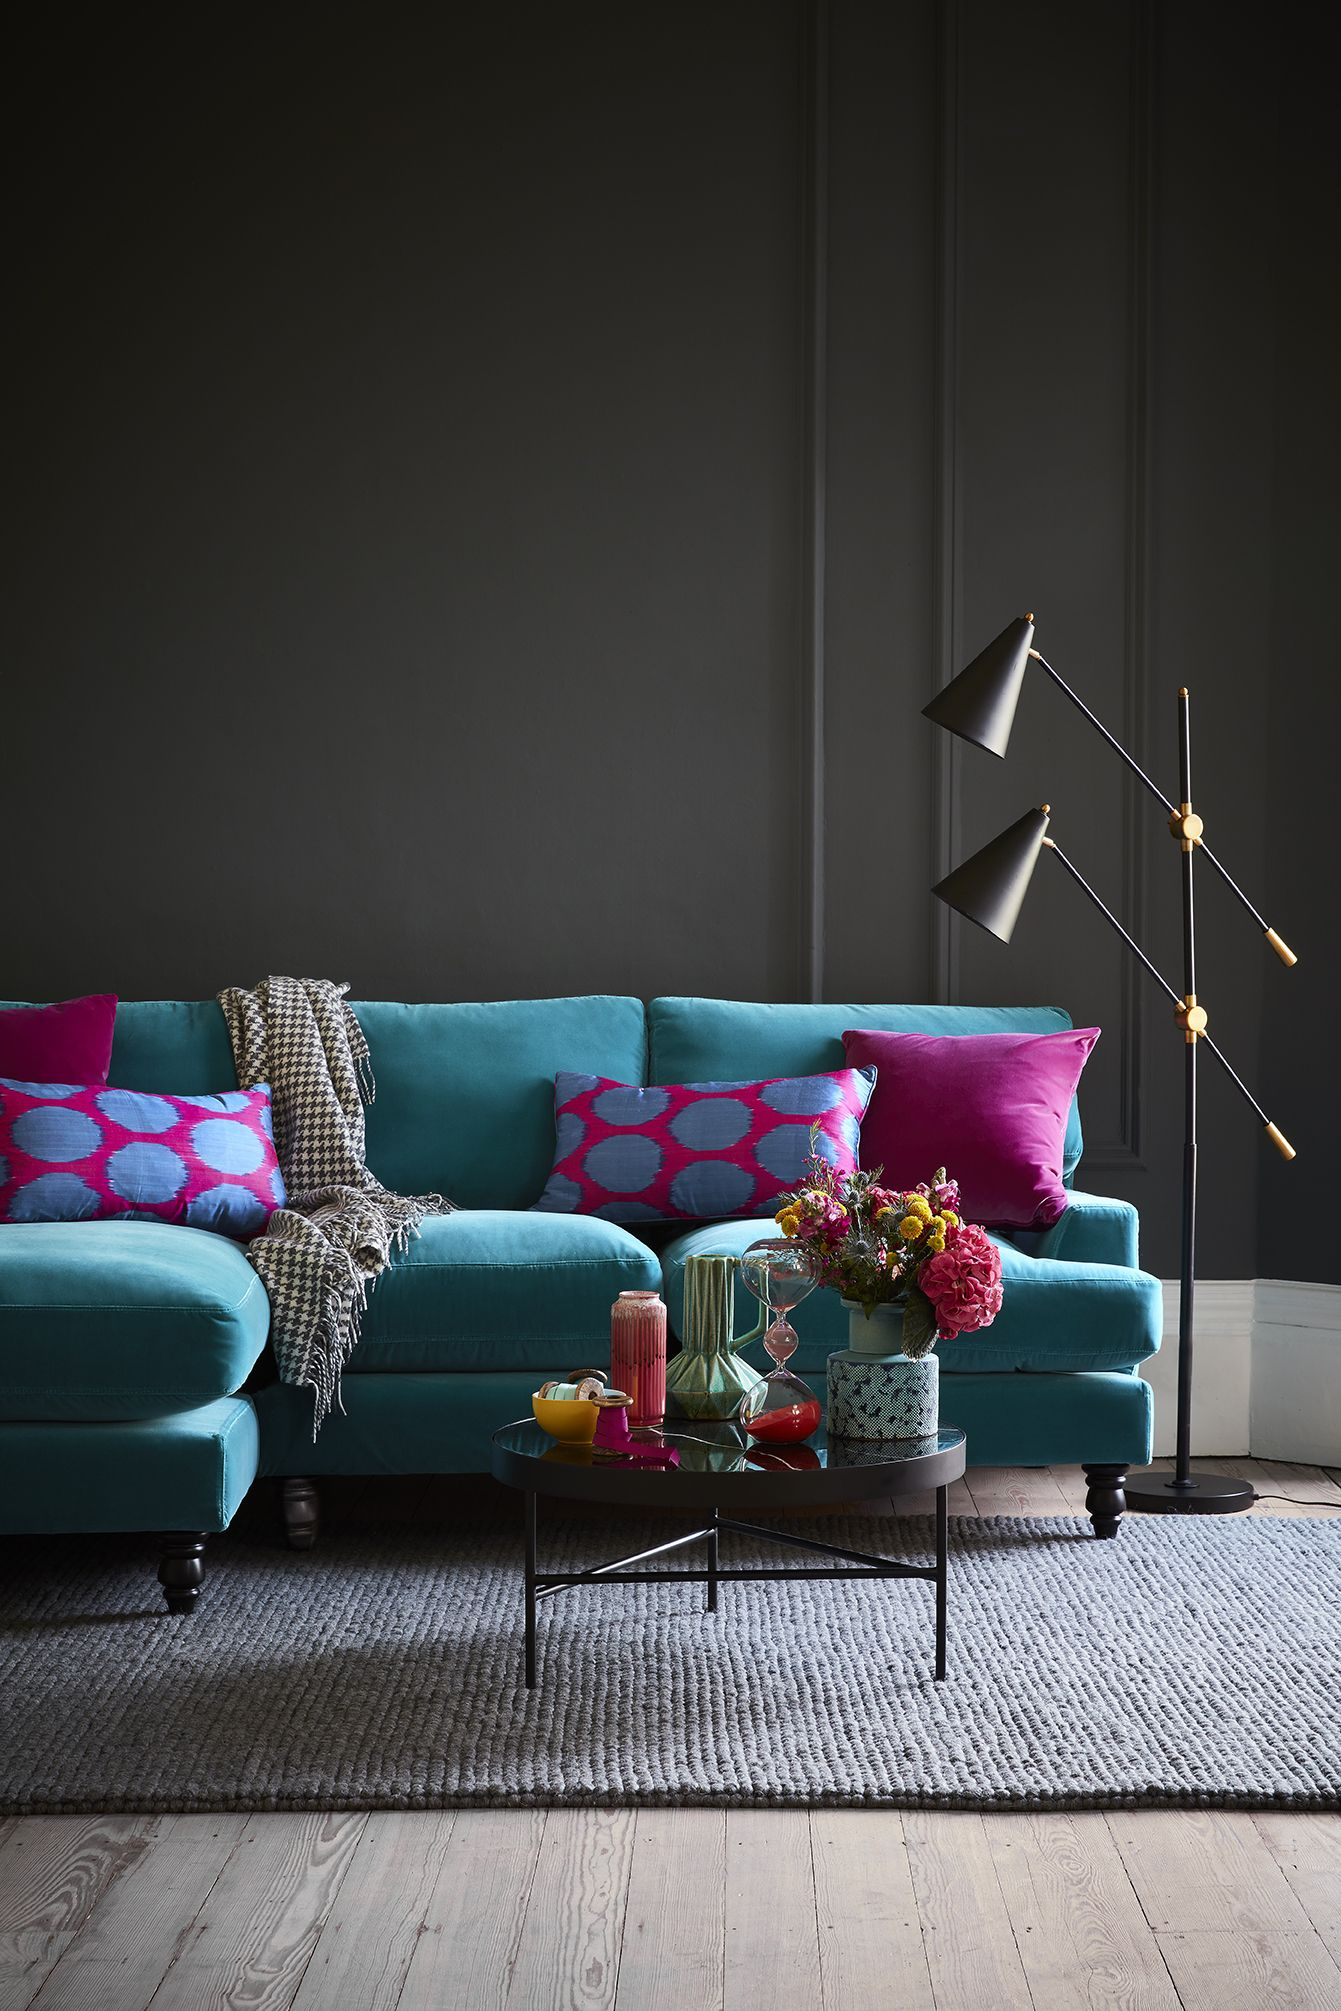 Teal Appeal For A Bright Colourful Look Pair A Teal Shade Against A Dramatic And Dark Backdrop We Love Th Living Room Designs Living Room Sofa Room Design